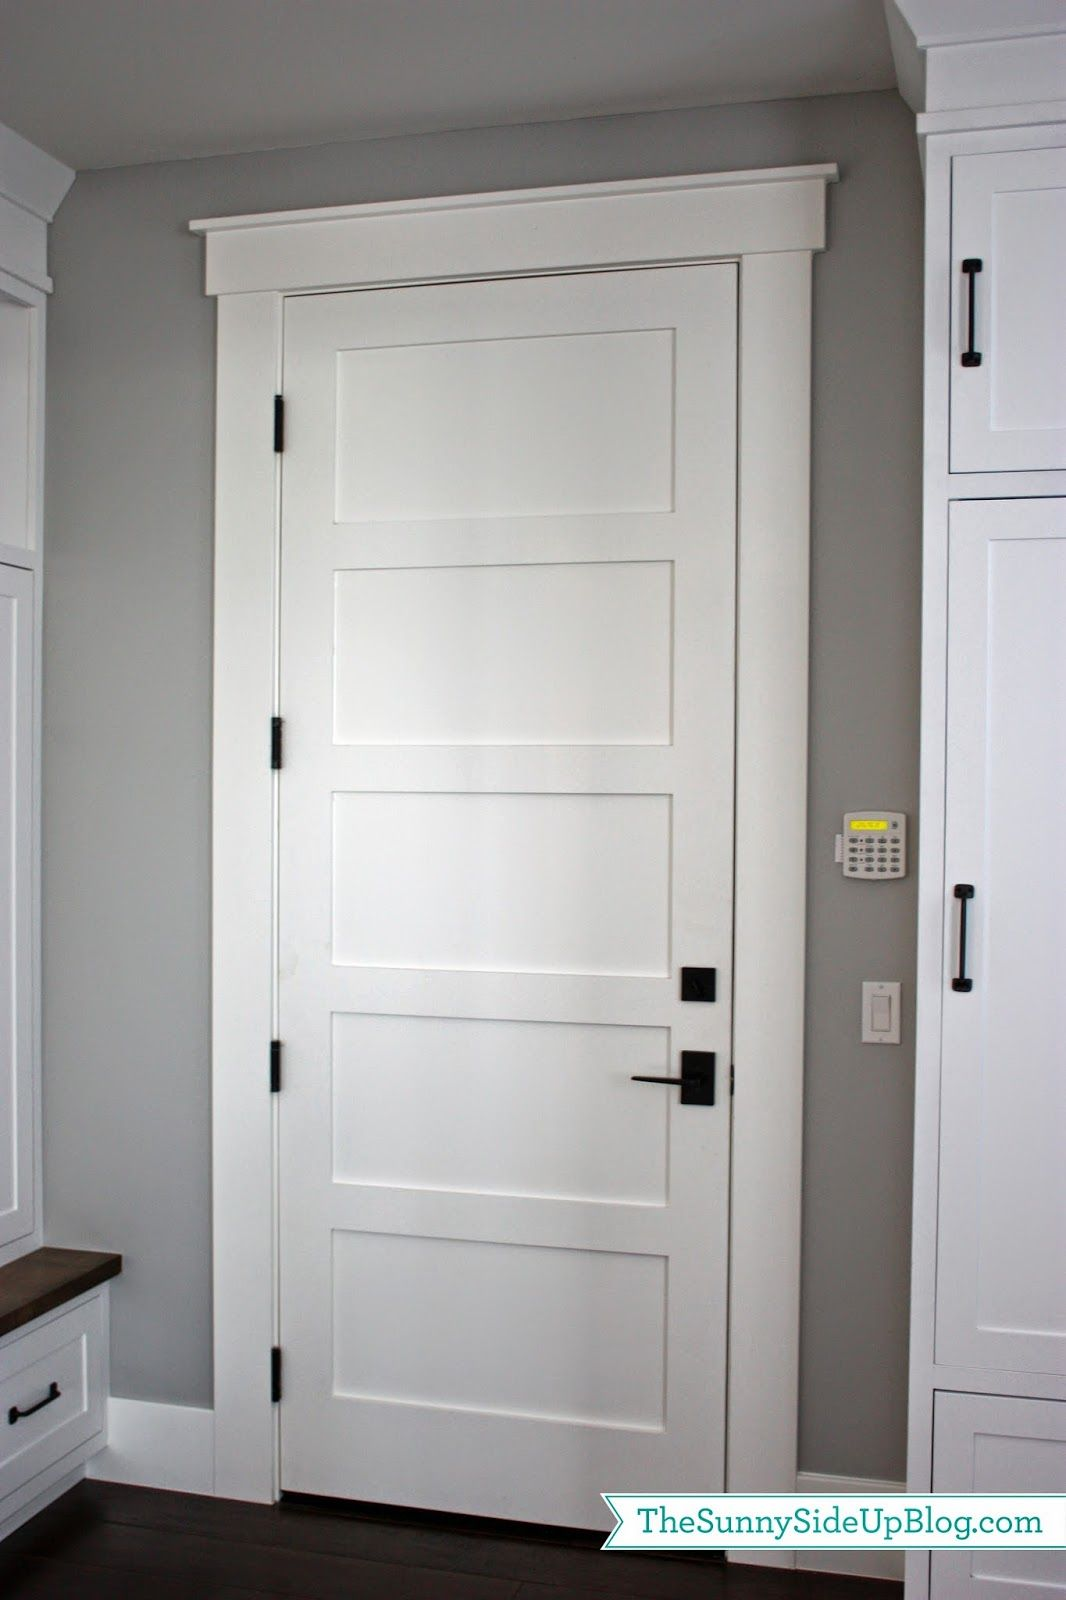 Mudroom Q A Doorshardware Pinterest Mudroom Hardware And Bag